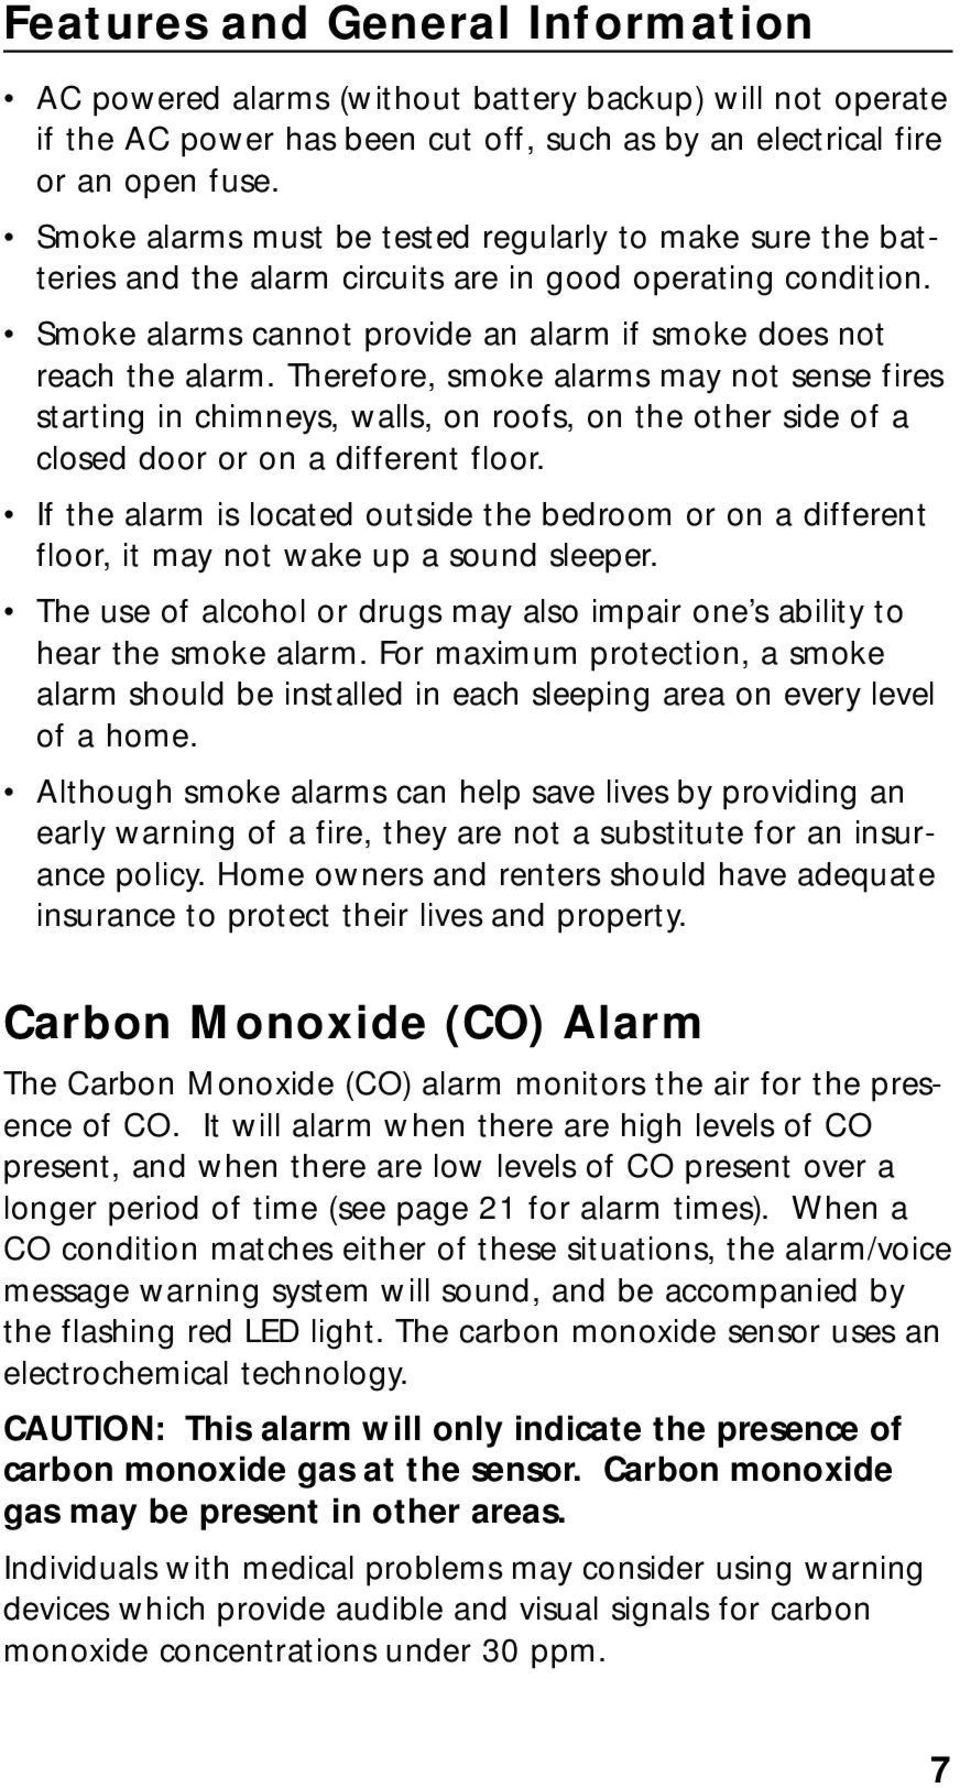 Therefore, smoke alarms may not sense fires starting in chimneys, walls, on roofs, on the other side of a closed door or on a different floor.